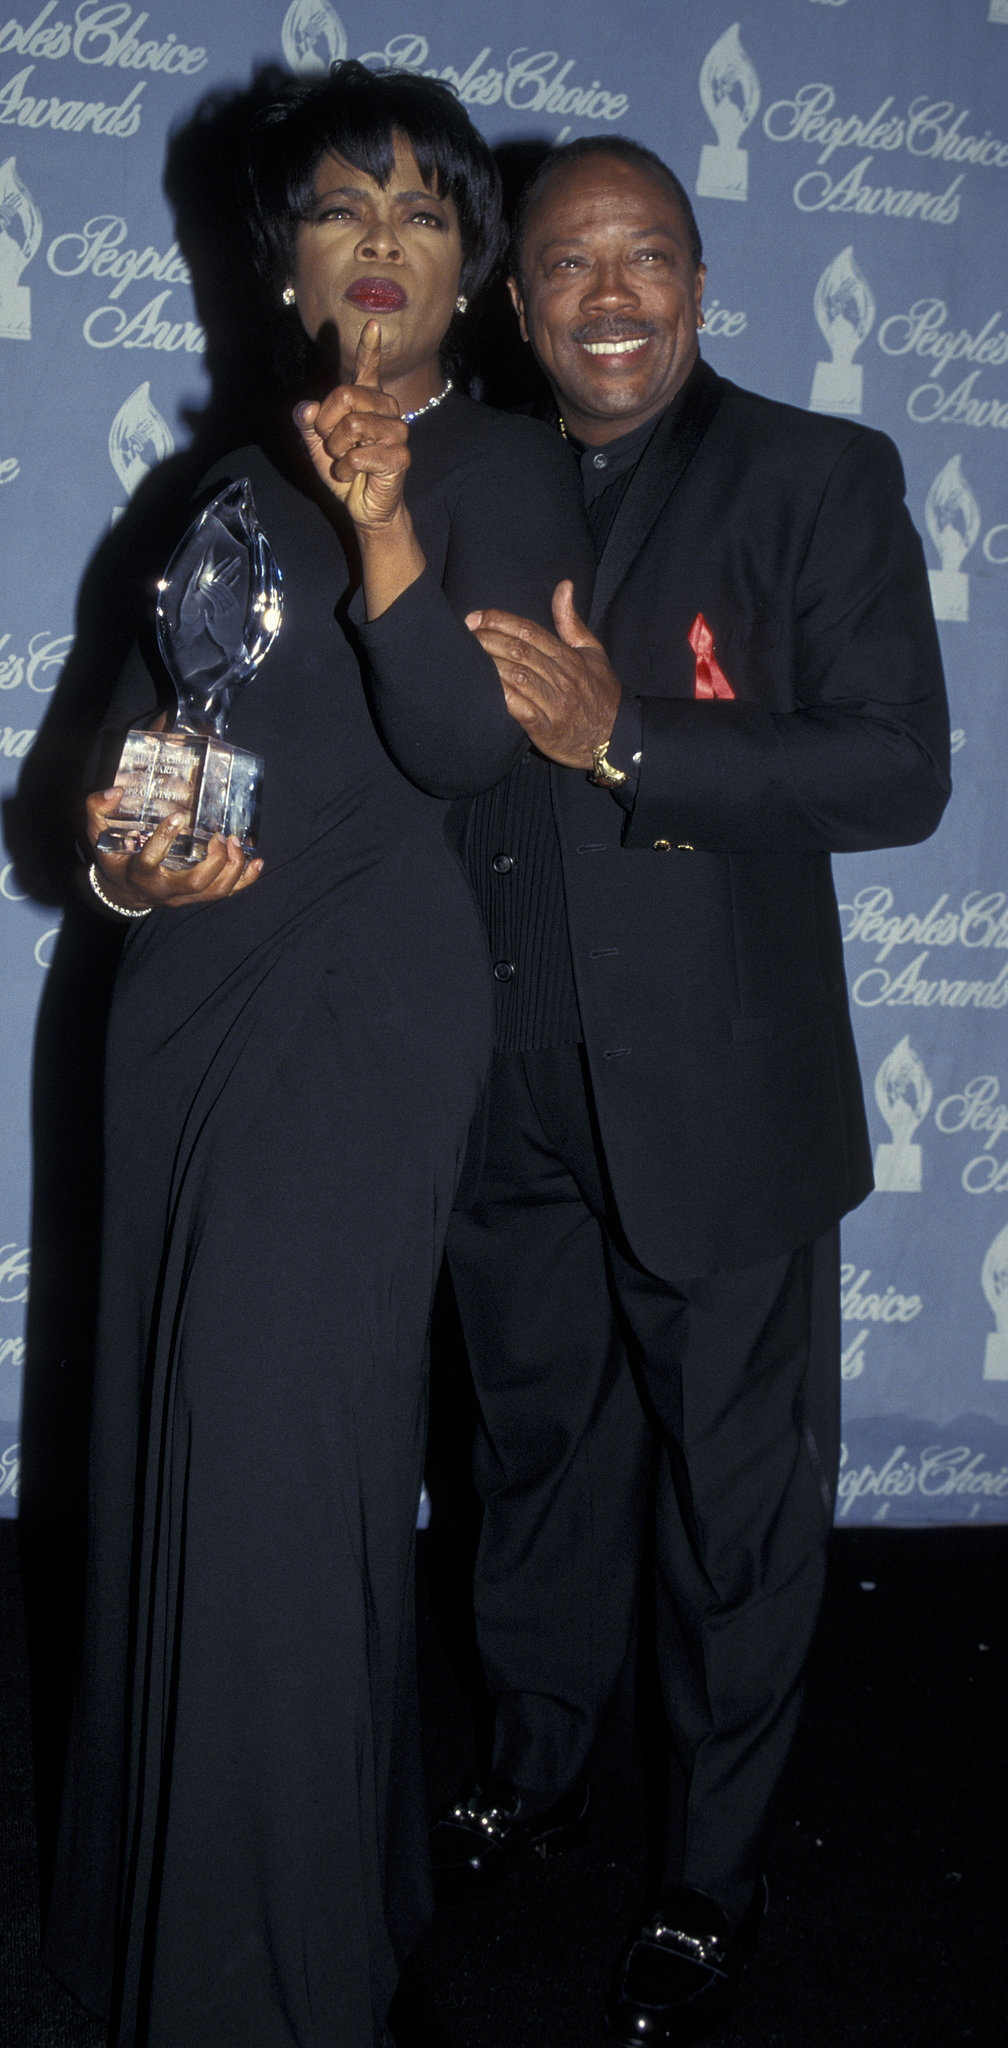 Oprah and Quincy Jones attended the People's Choice Awards in 1997.